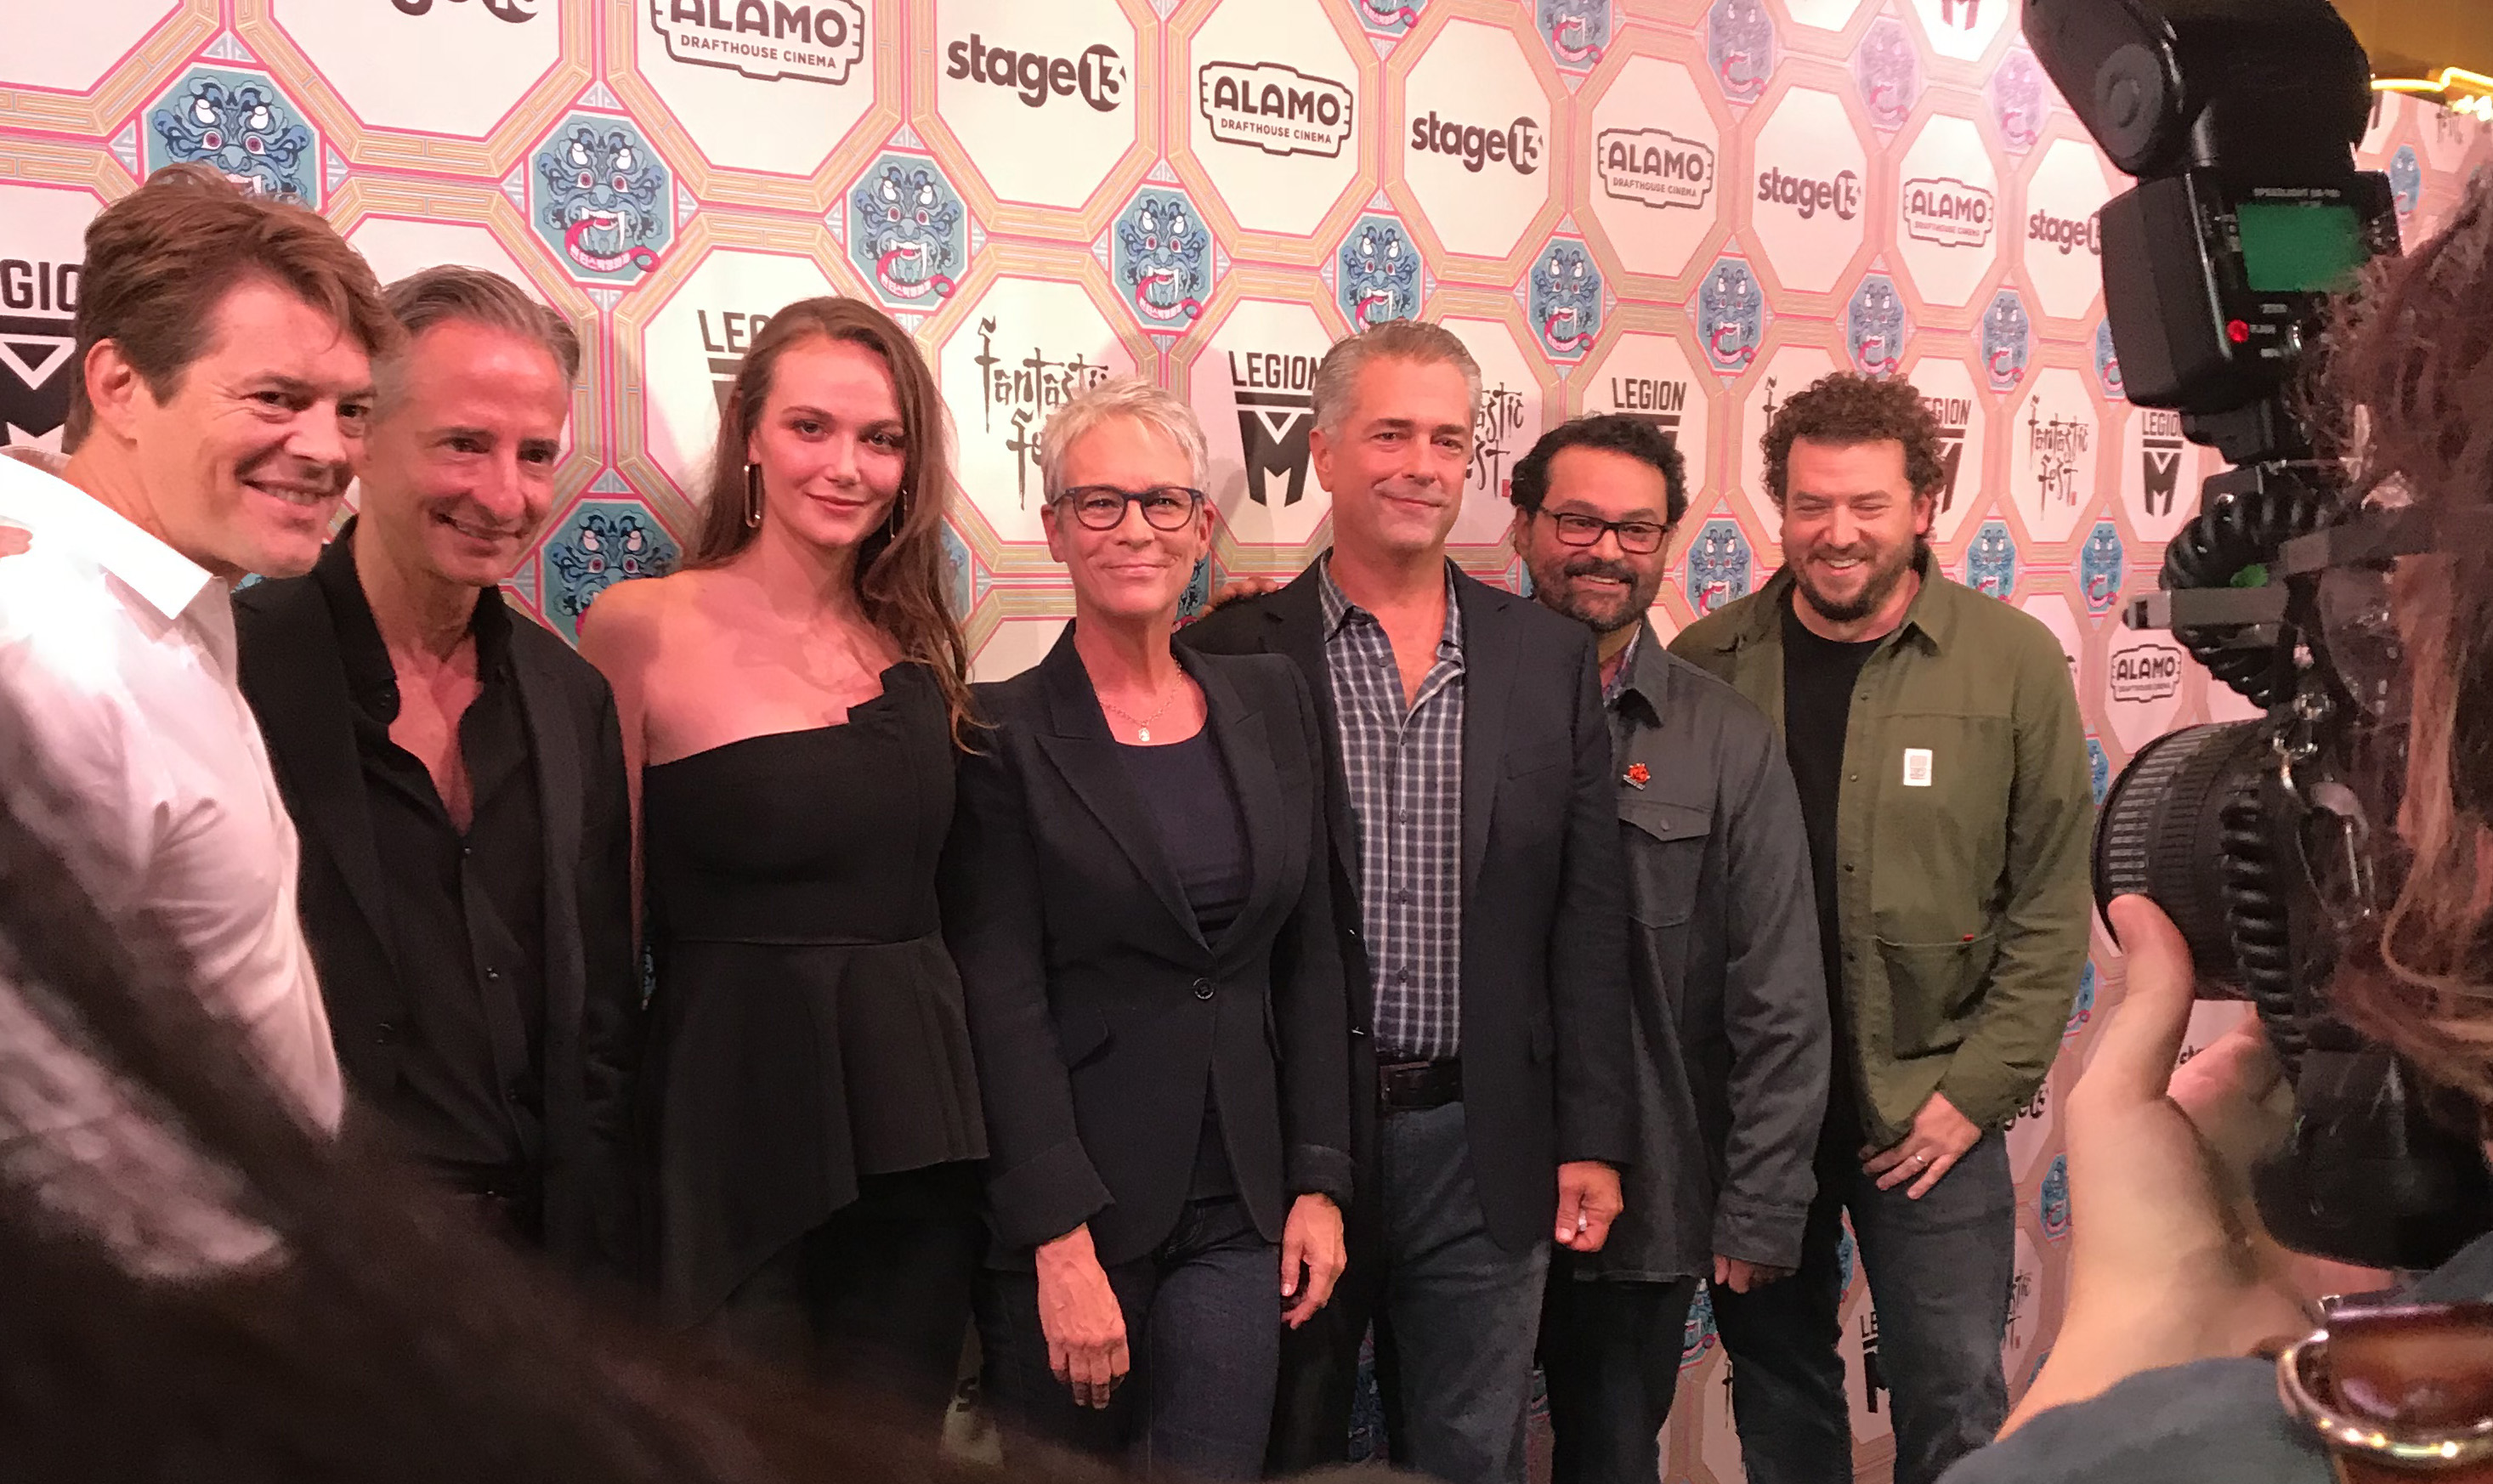 The cast and producers of HALLOWEEN at Fantastic Fest 2018